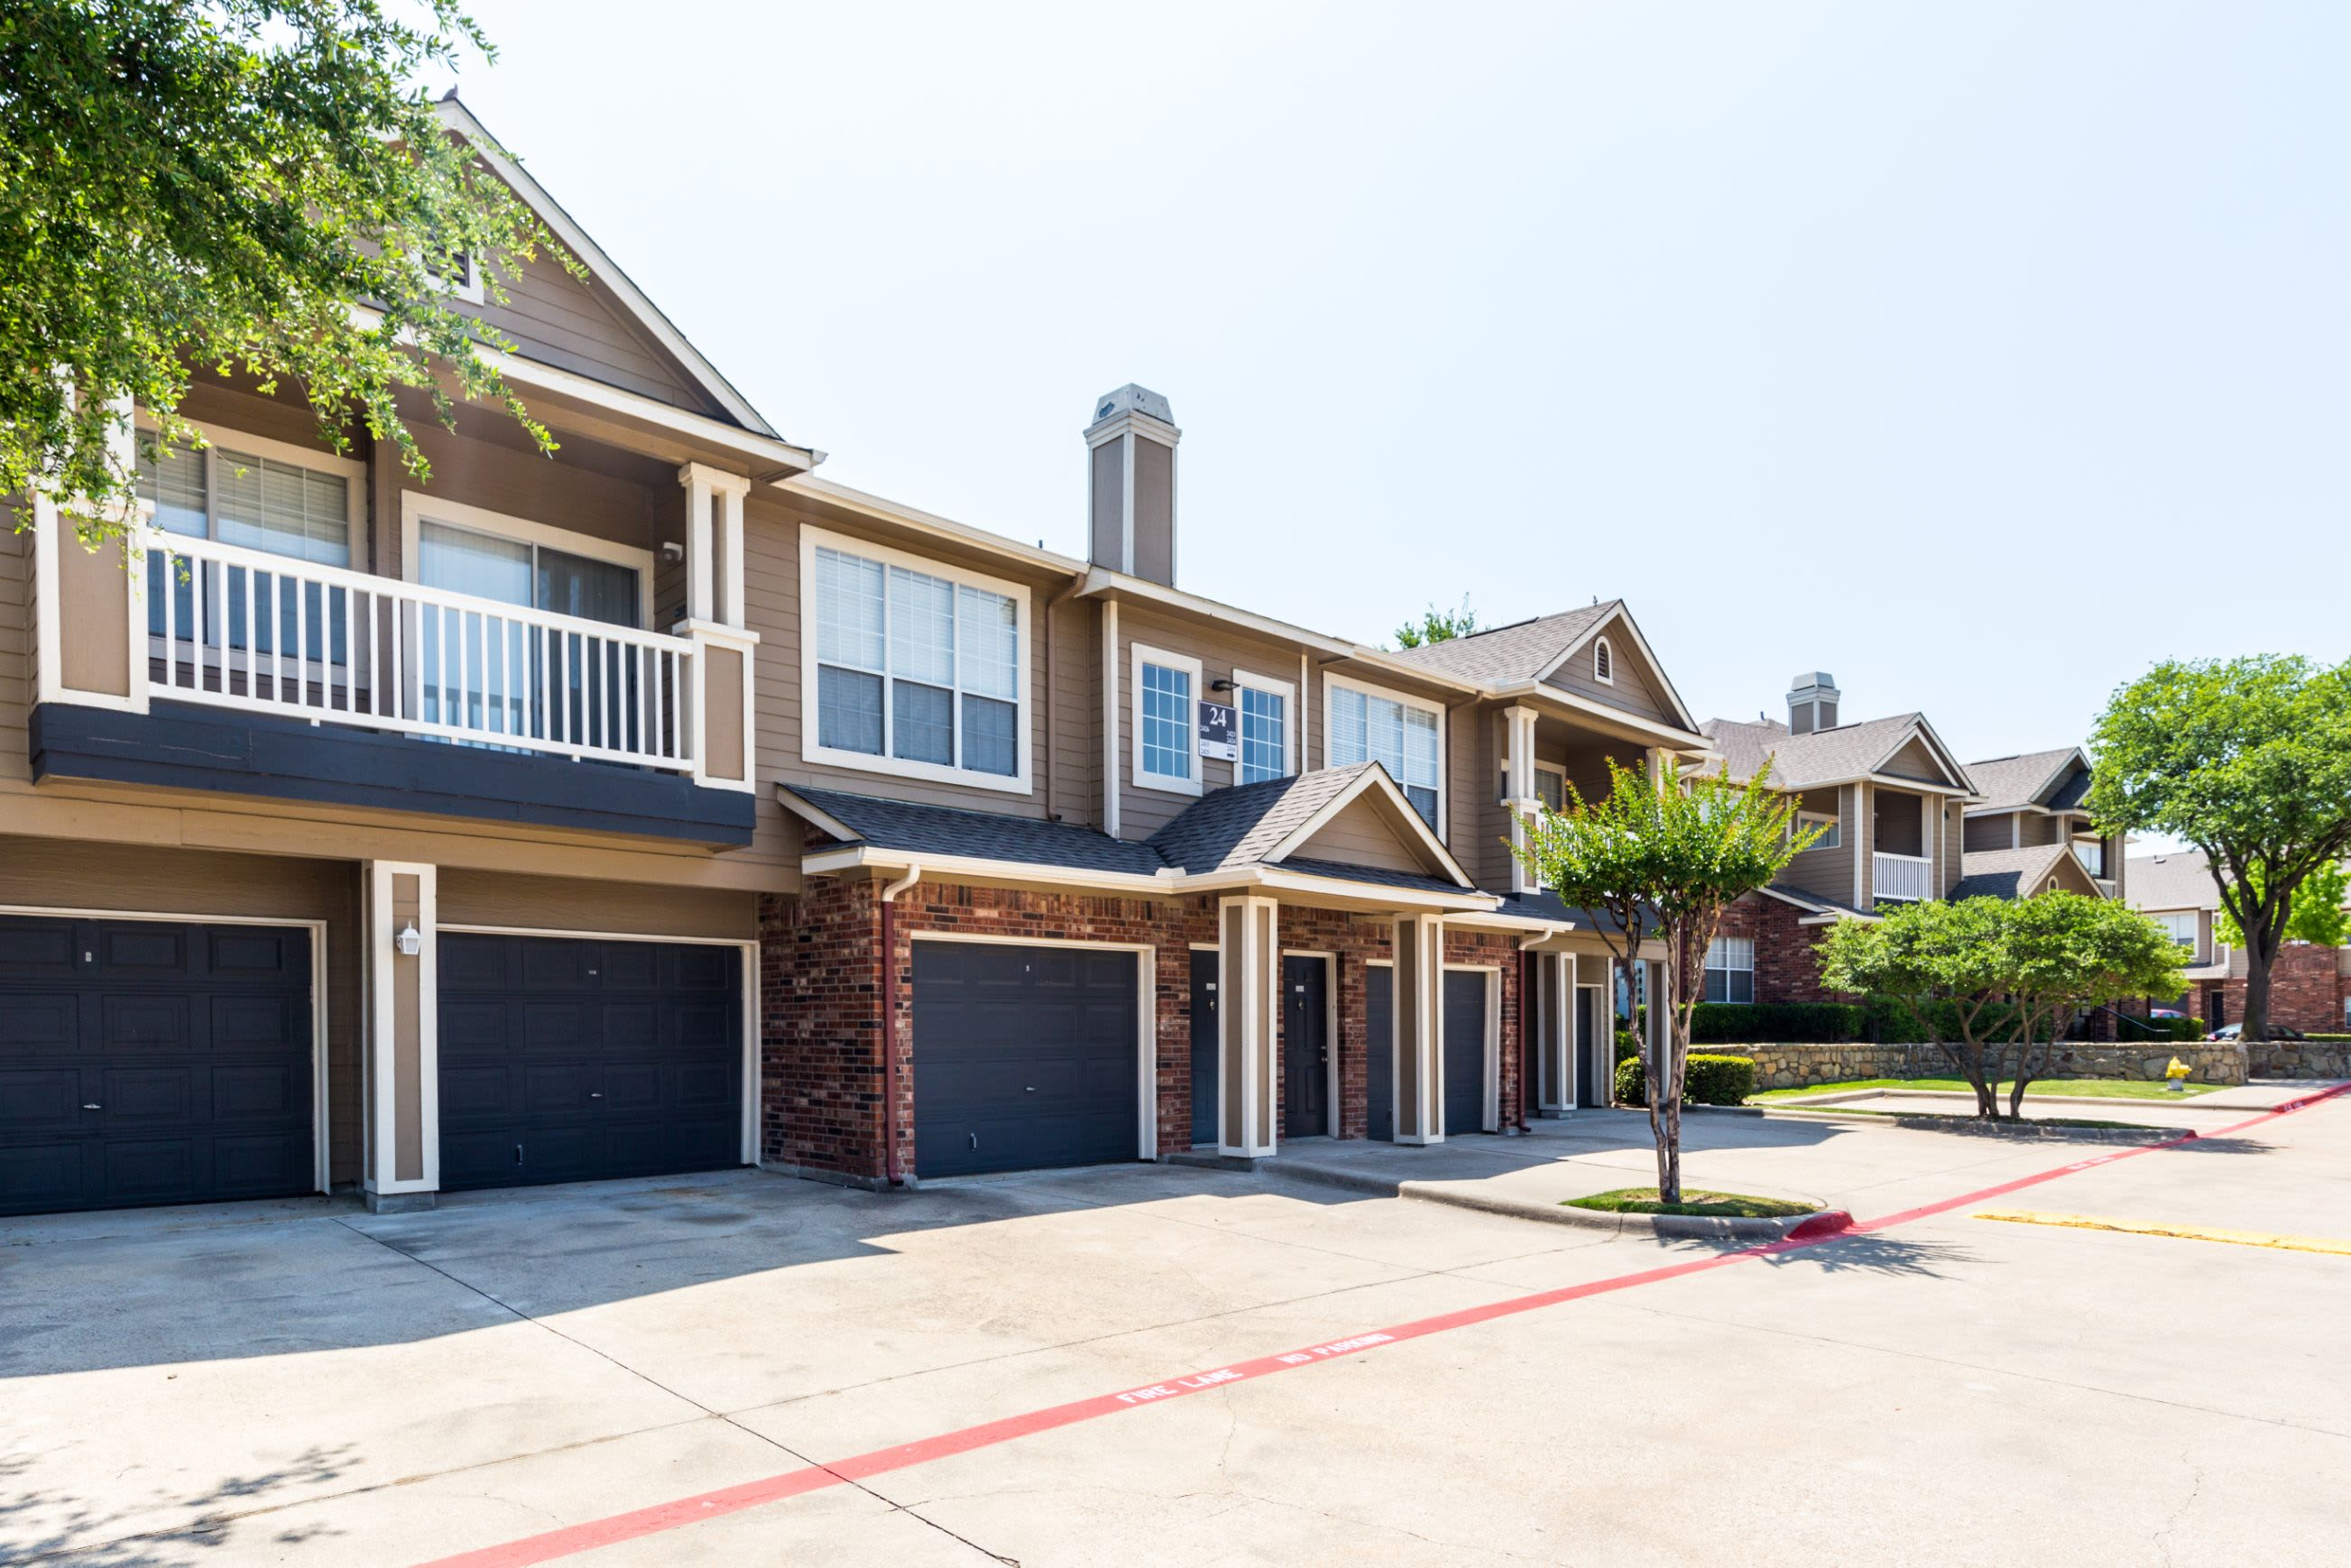 Exterior of units with garages at Marquis at Stonebriar in Frisco, Texas